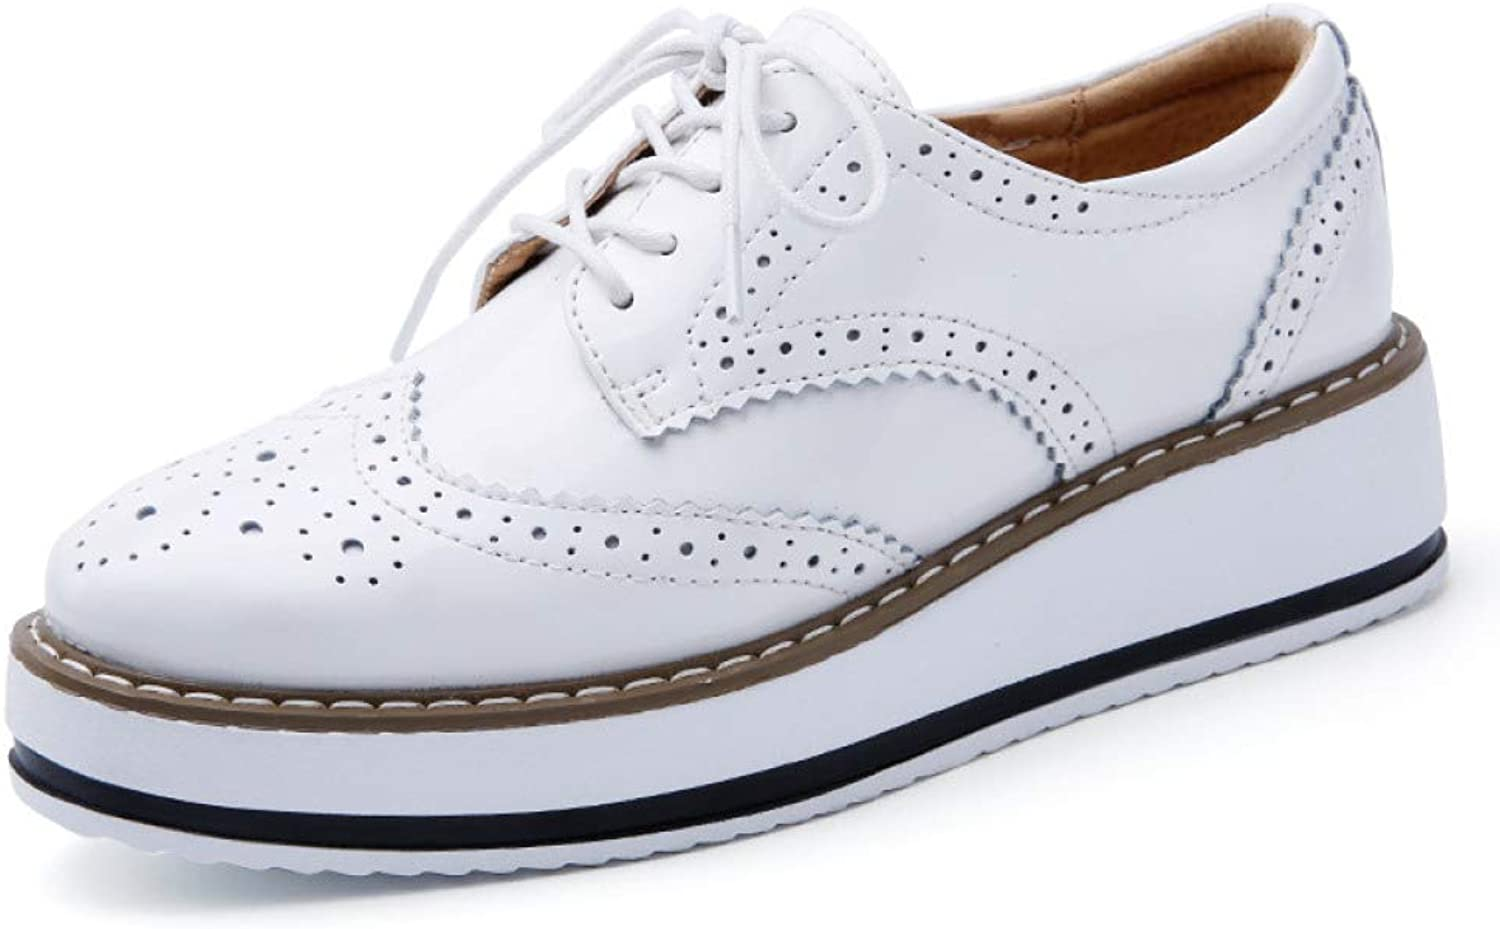 DETAIWIN Women Platform Casual shoes Lace Up Non Slip Wingtip Comfy Perforated Ladies Flats Brogue Oxfords shoes